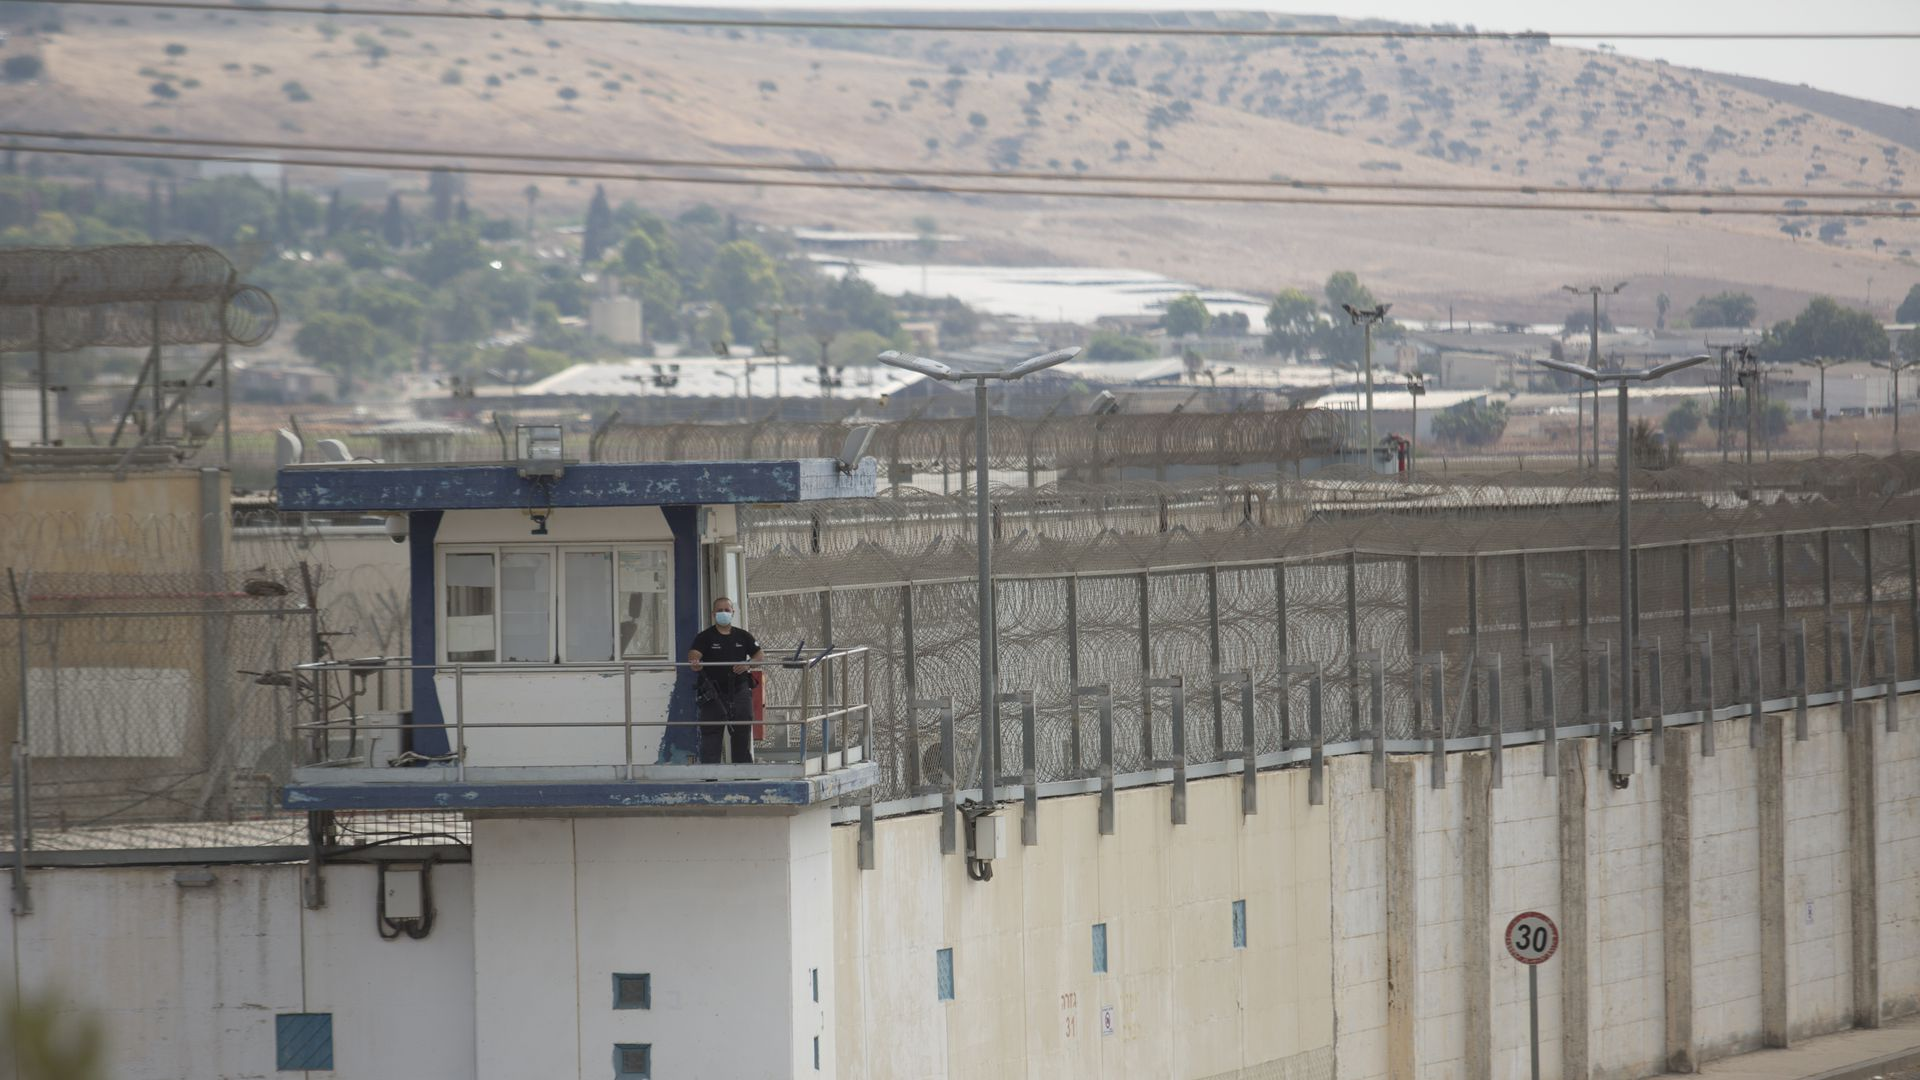 6 Palestinian prisoners escape from high-security Israeli prison - Axios